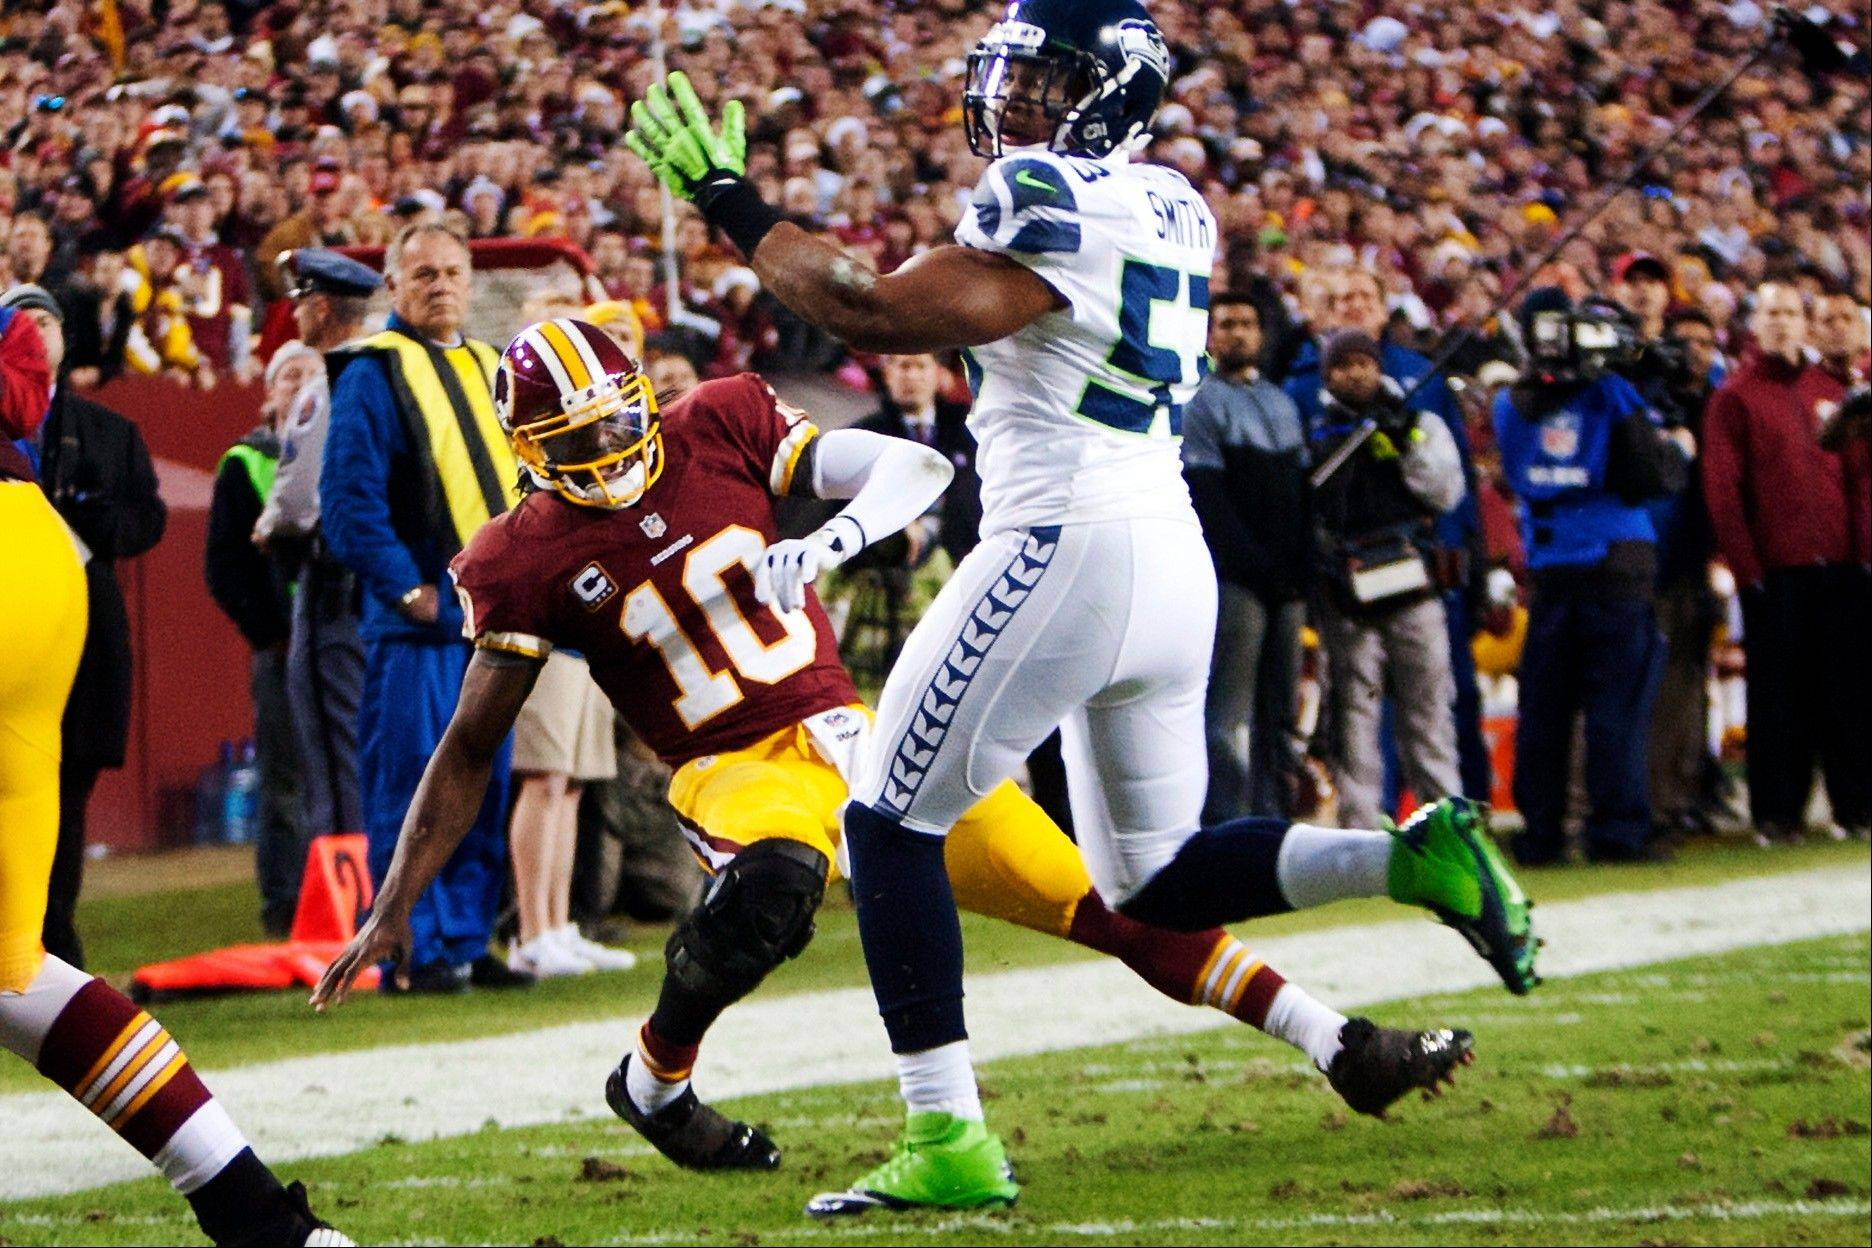 Washington Redskins quarterback Robert Griffin III (10) hurts his right knee as he falls awkwardly while throwing an incomplete pass under pressure from Seattle Seahawks linebacker Malcolm Smith (53) Sunday during the first quarter.